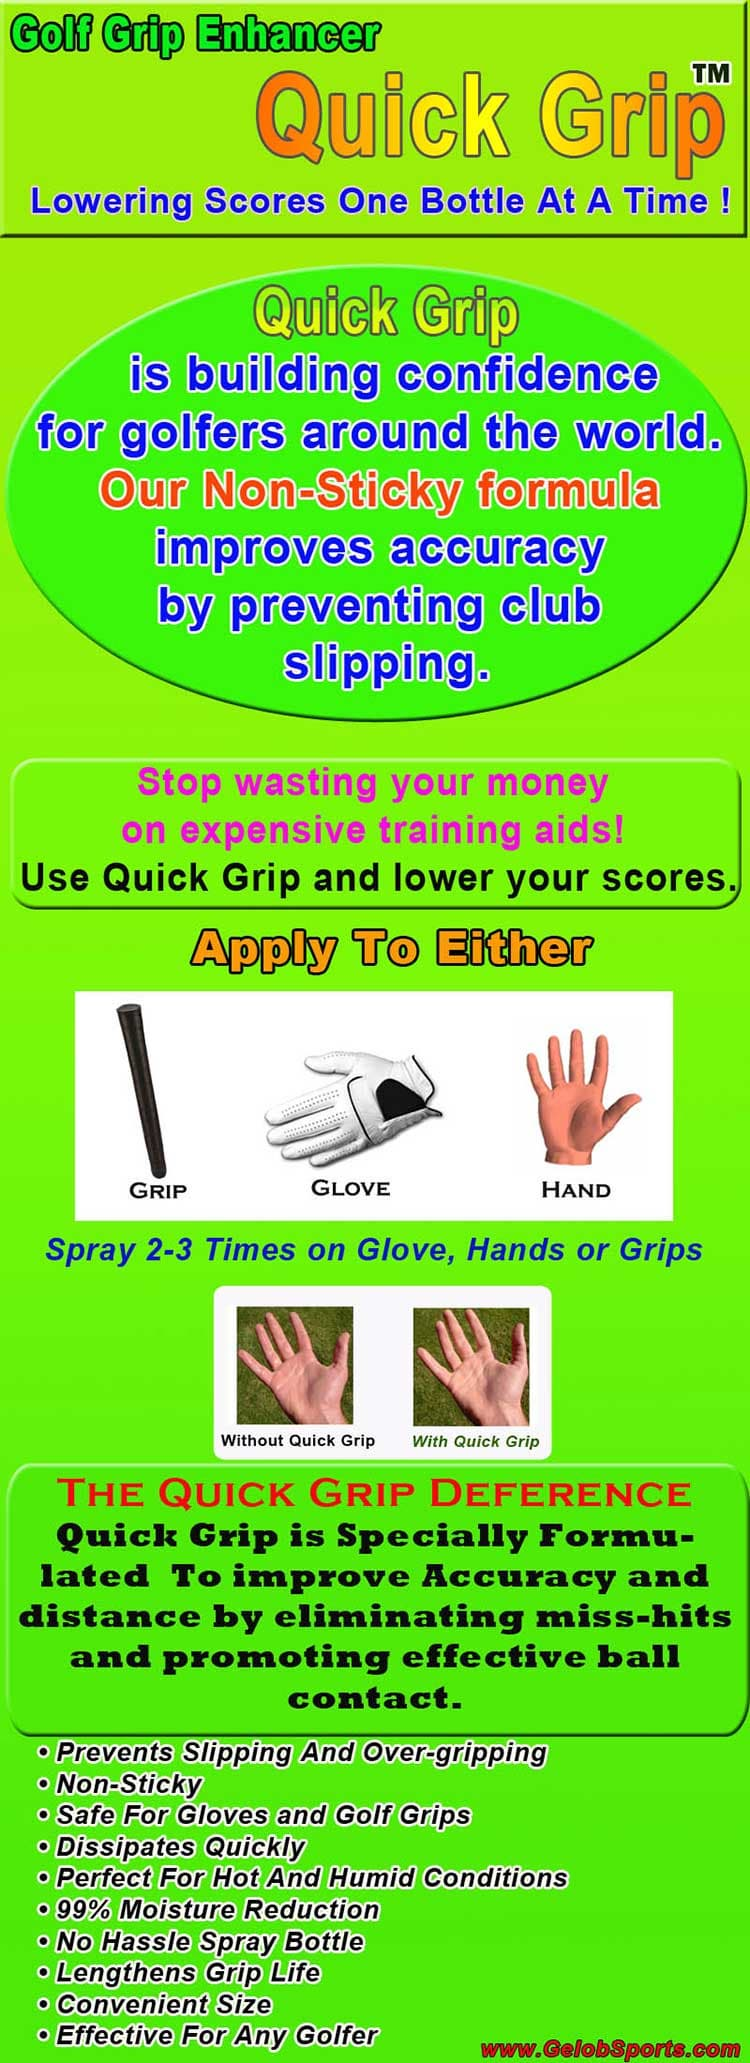 Badminton Grip enhancer